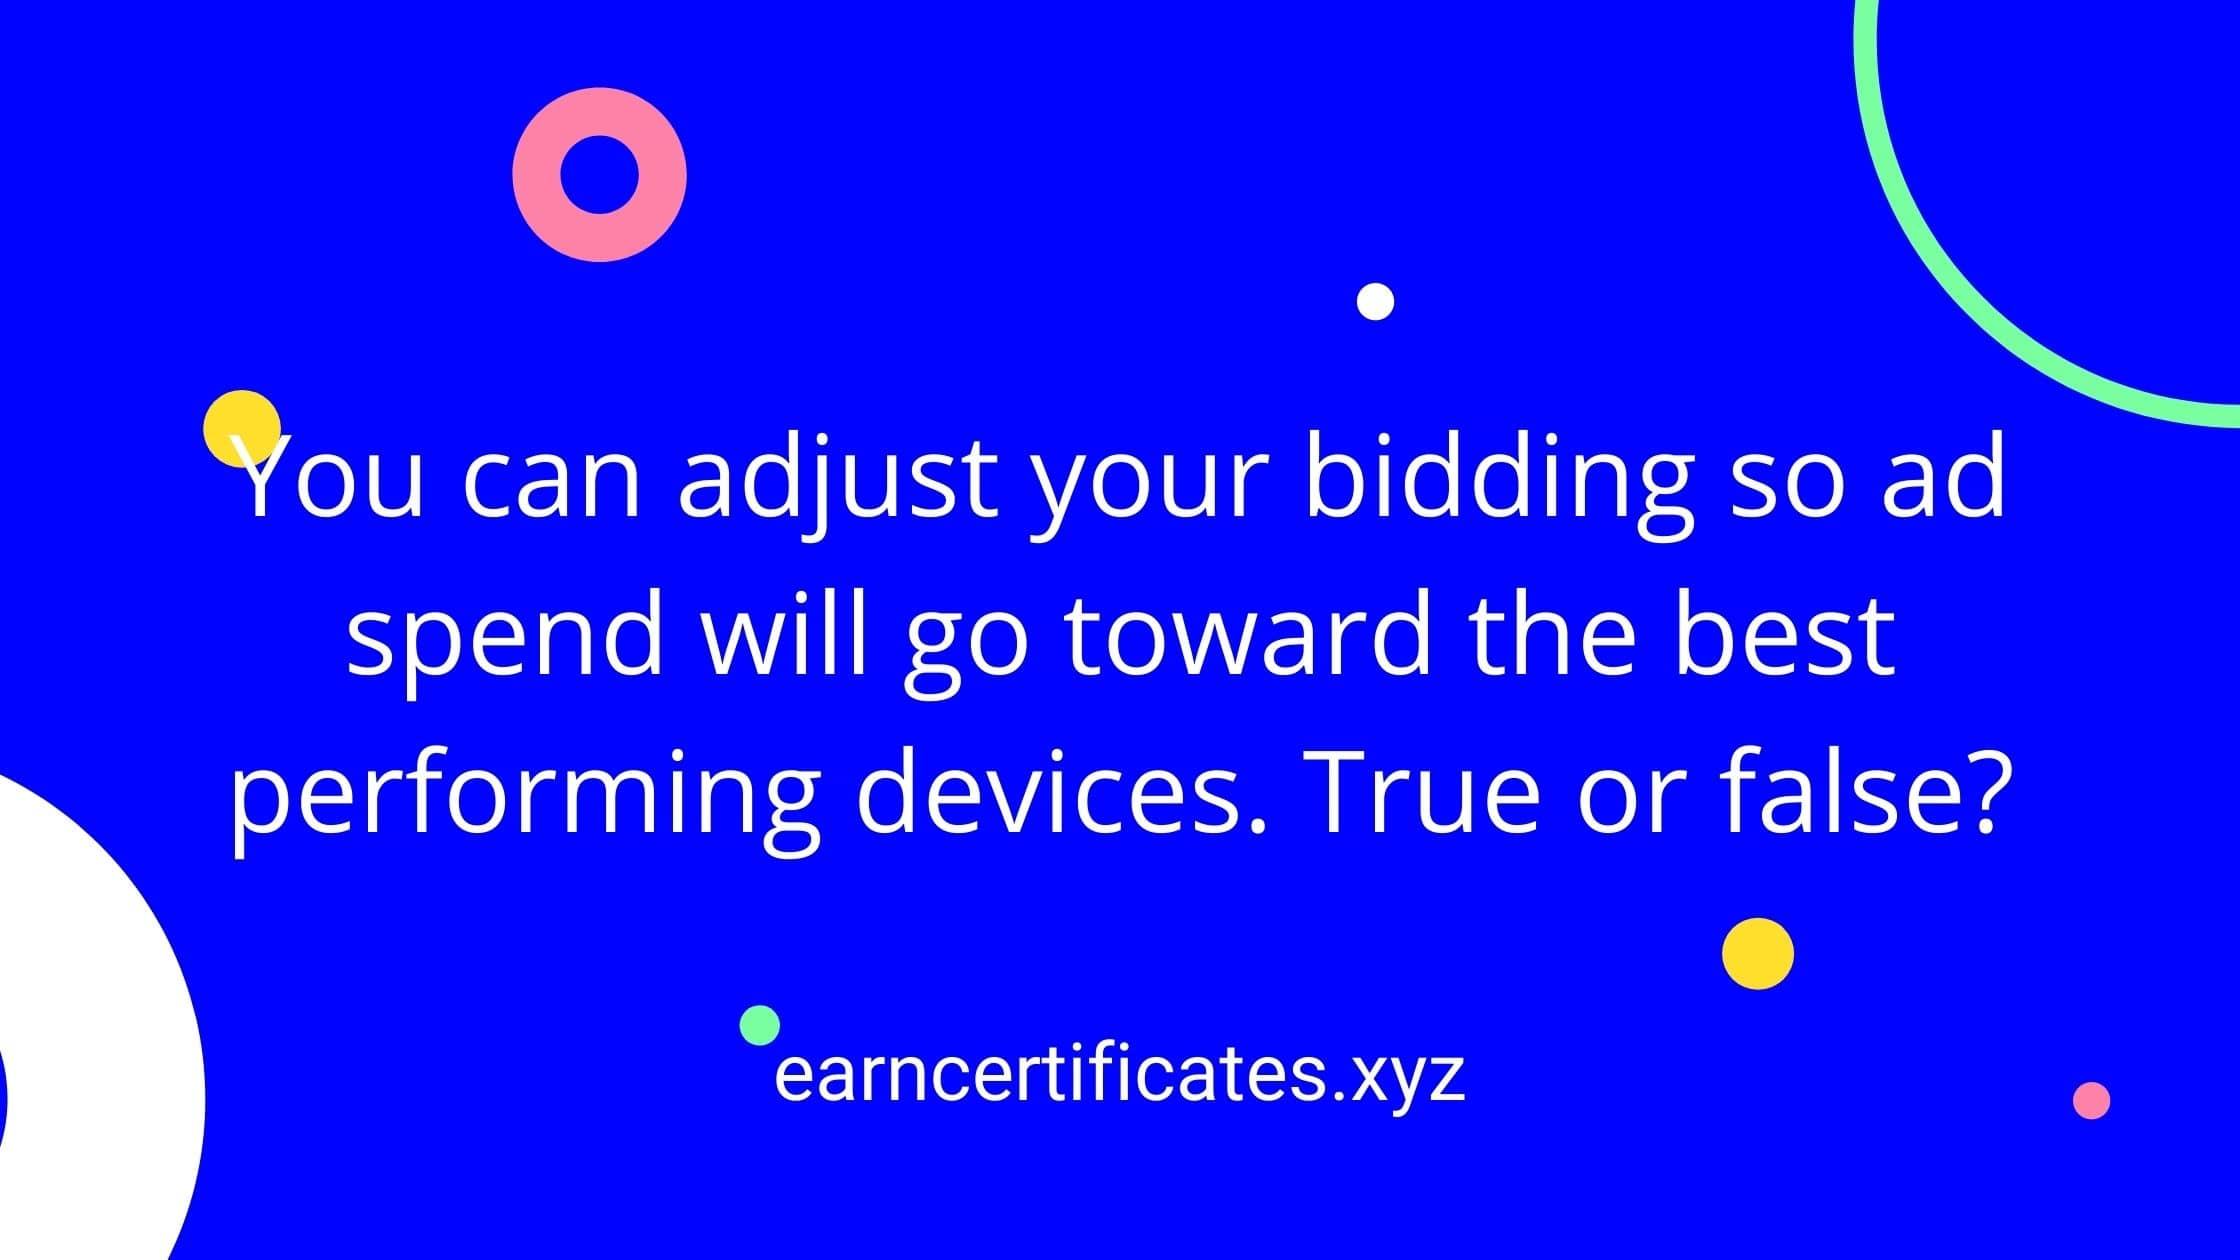 You can adjust your bidding so ad spend will go toward the best performing devices. True or false?